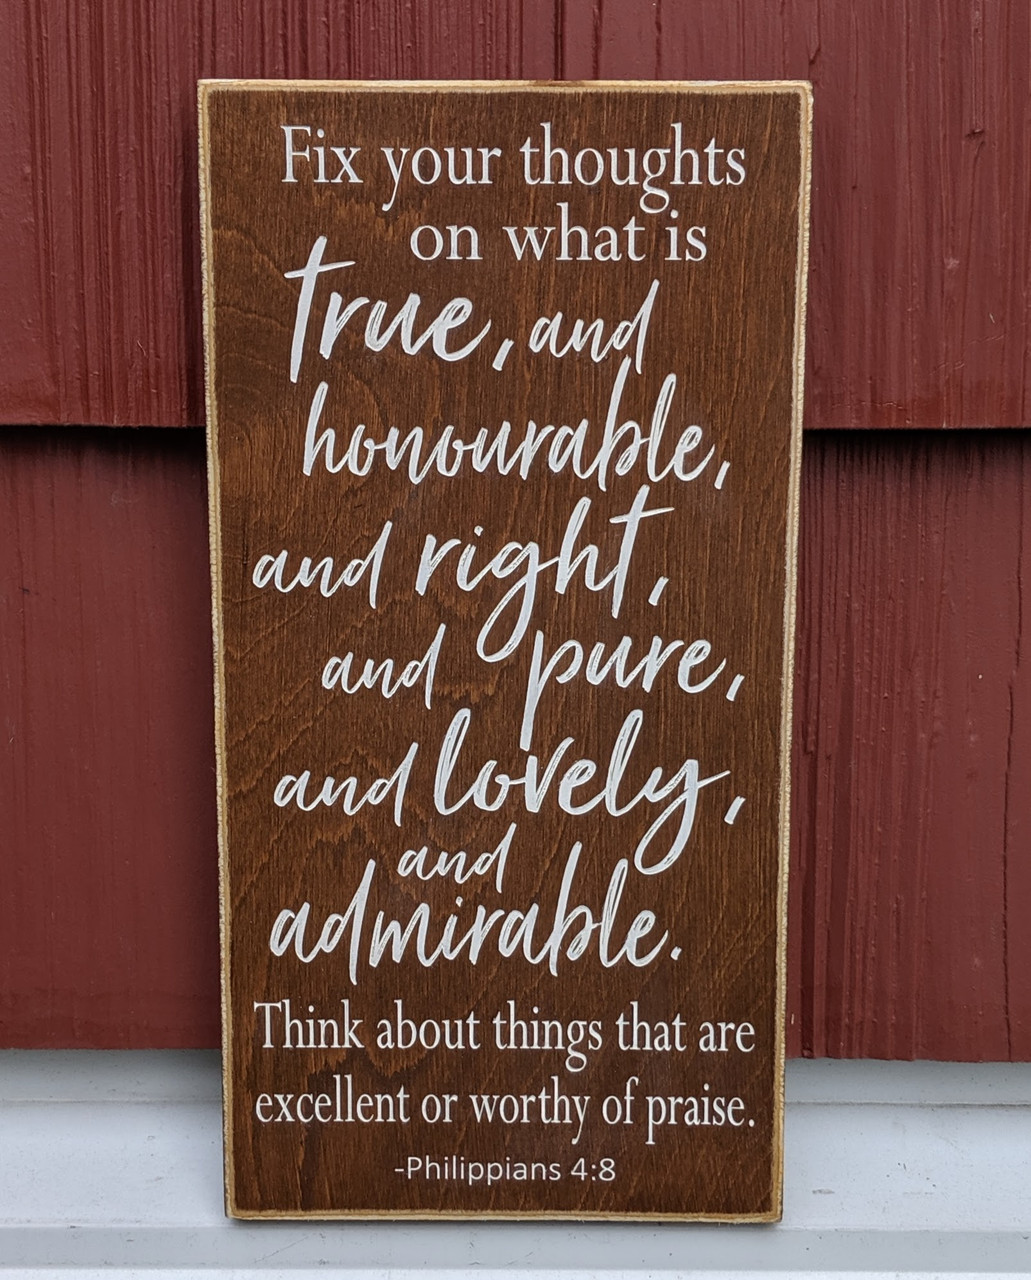 Fix your thoughts on what is true - Philippians 4:8 wood sign